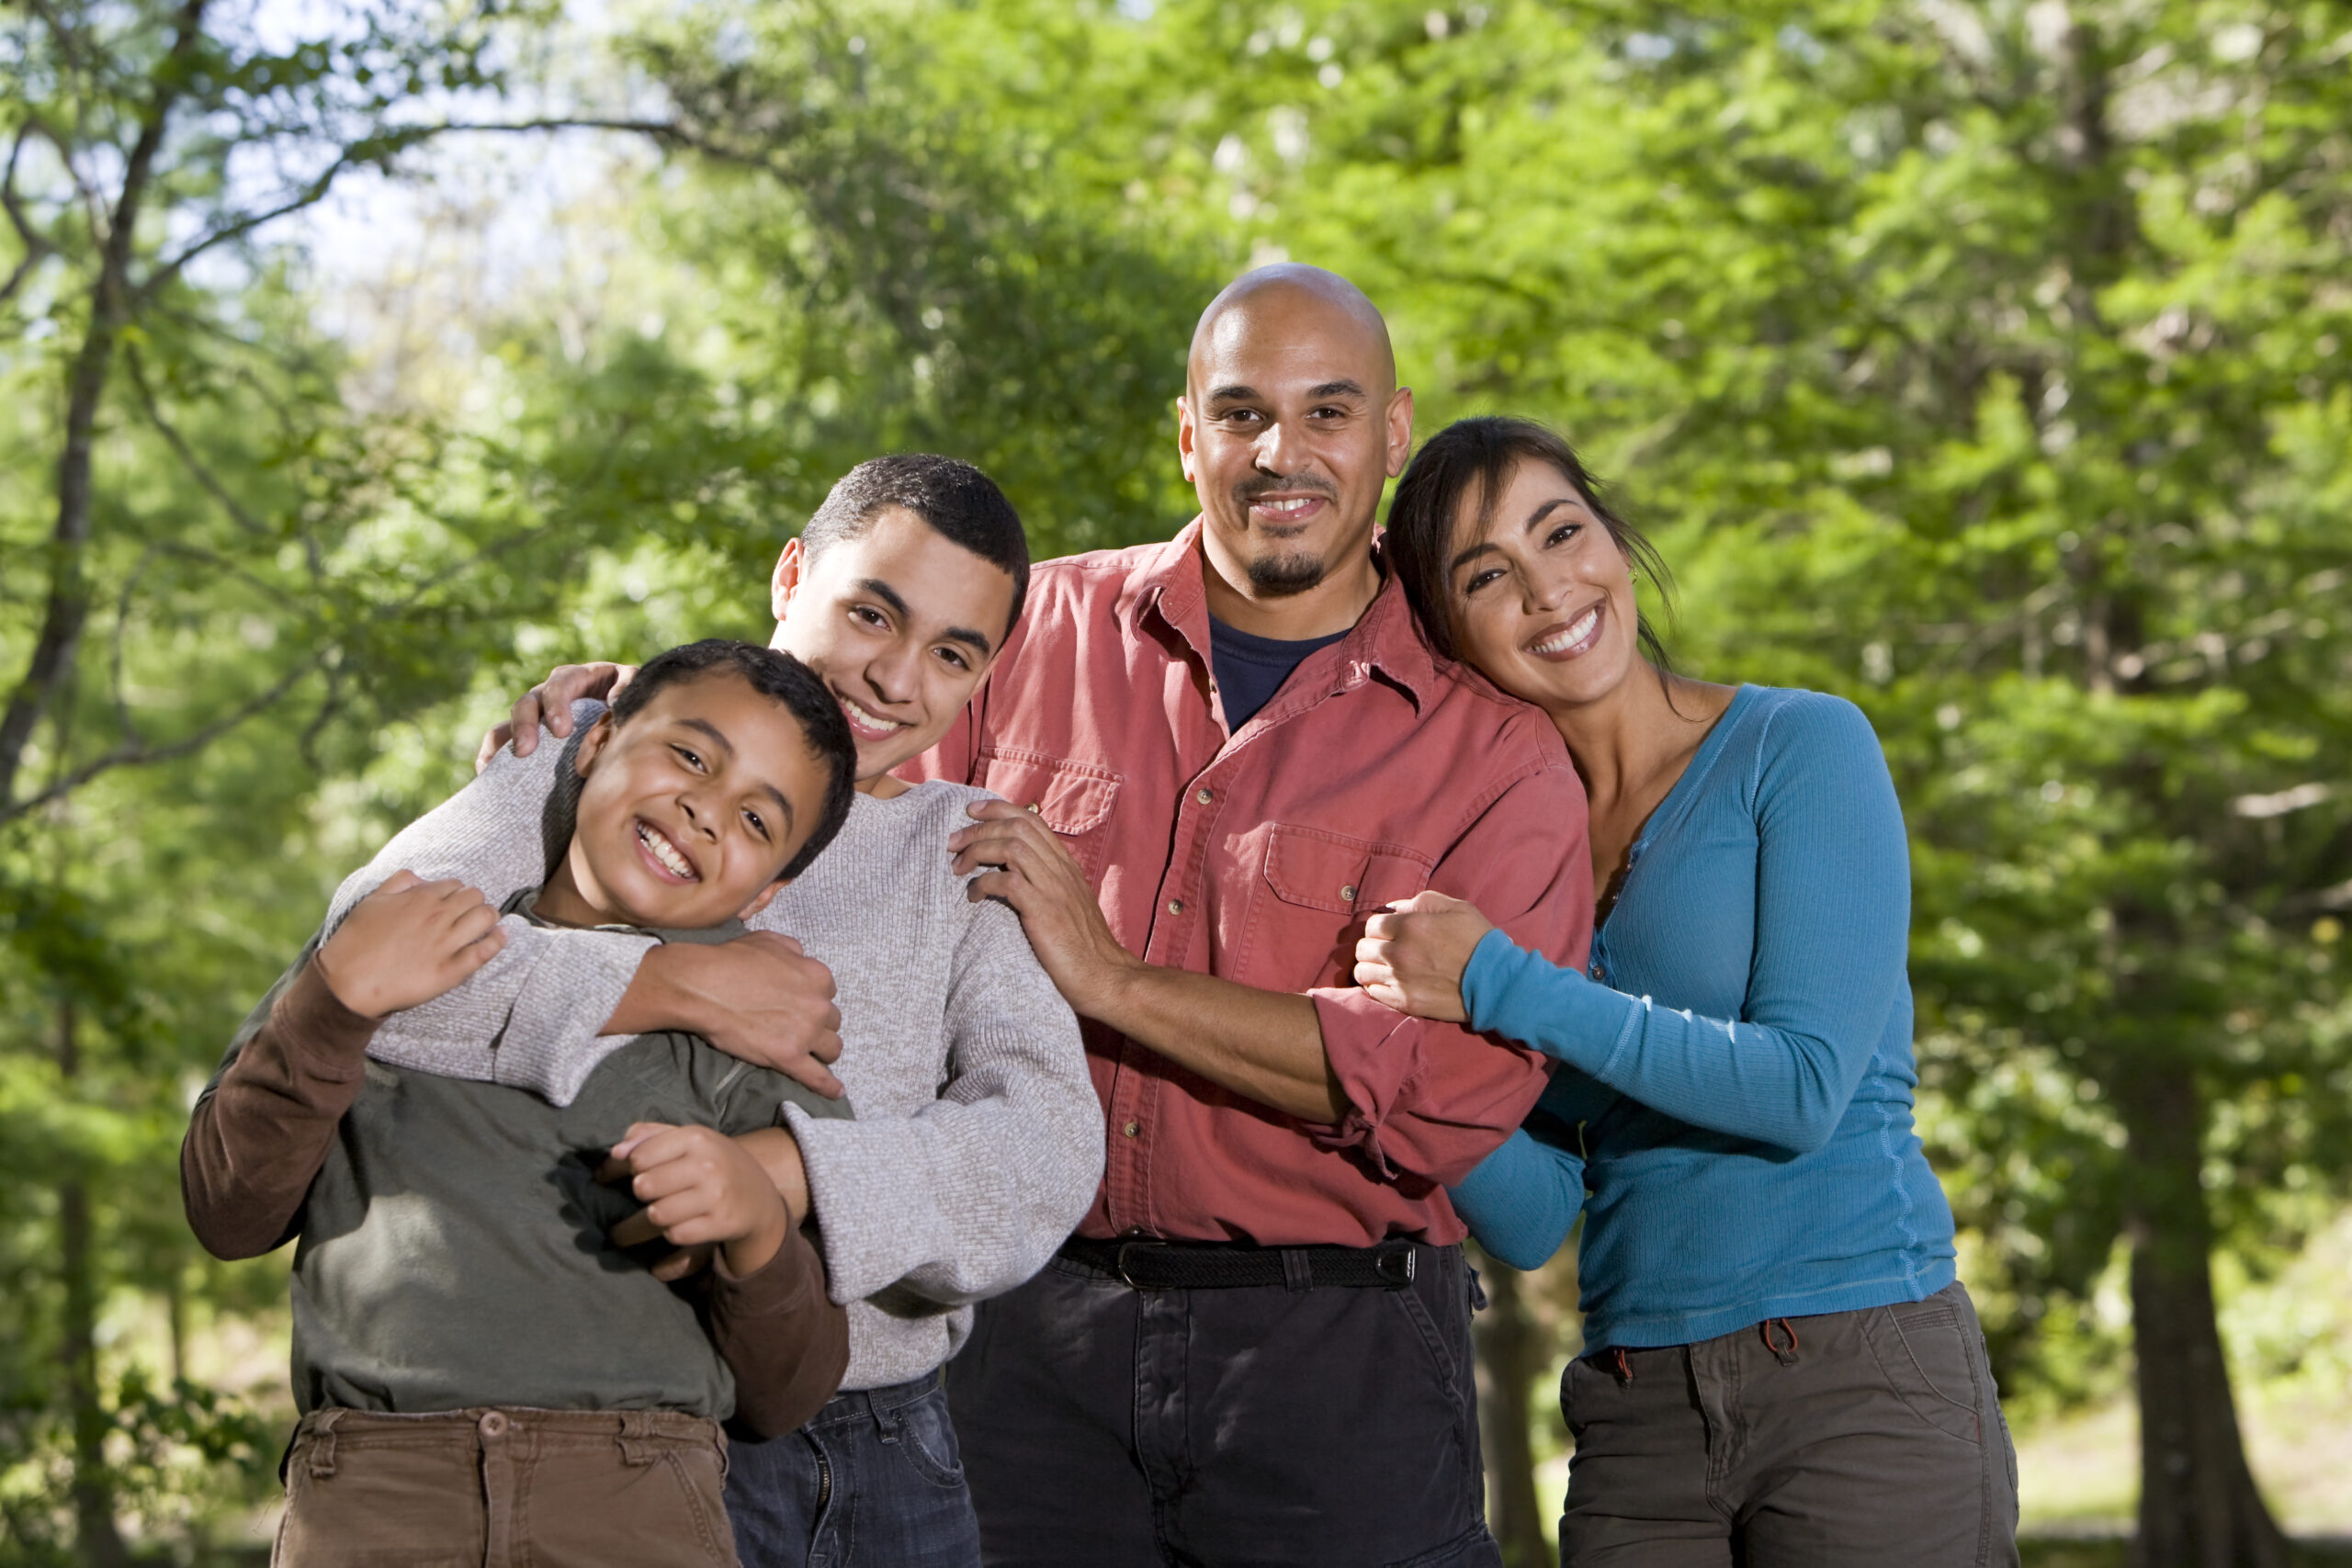 The family unit works well together after Family therapy in Gilbert, Arizona with Tino Silva